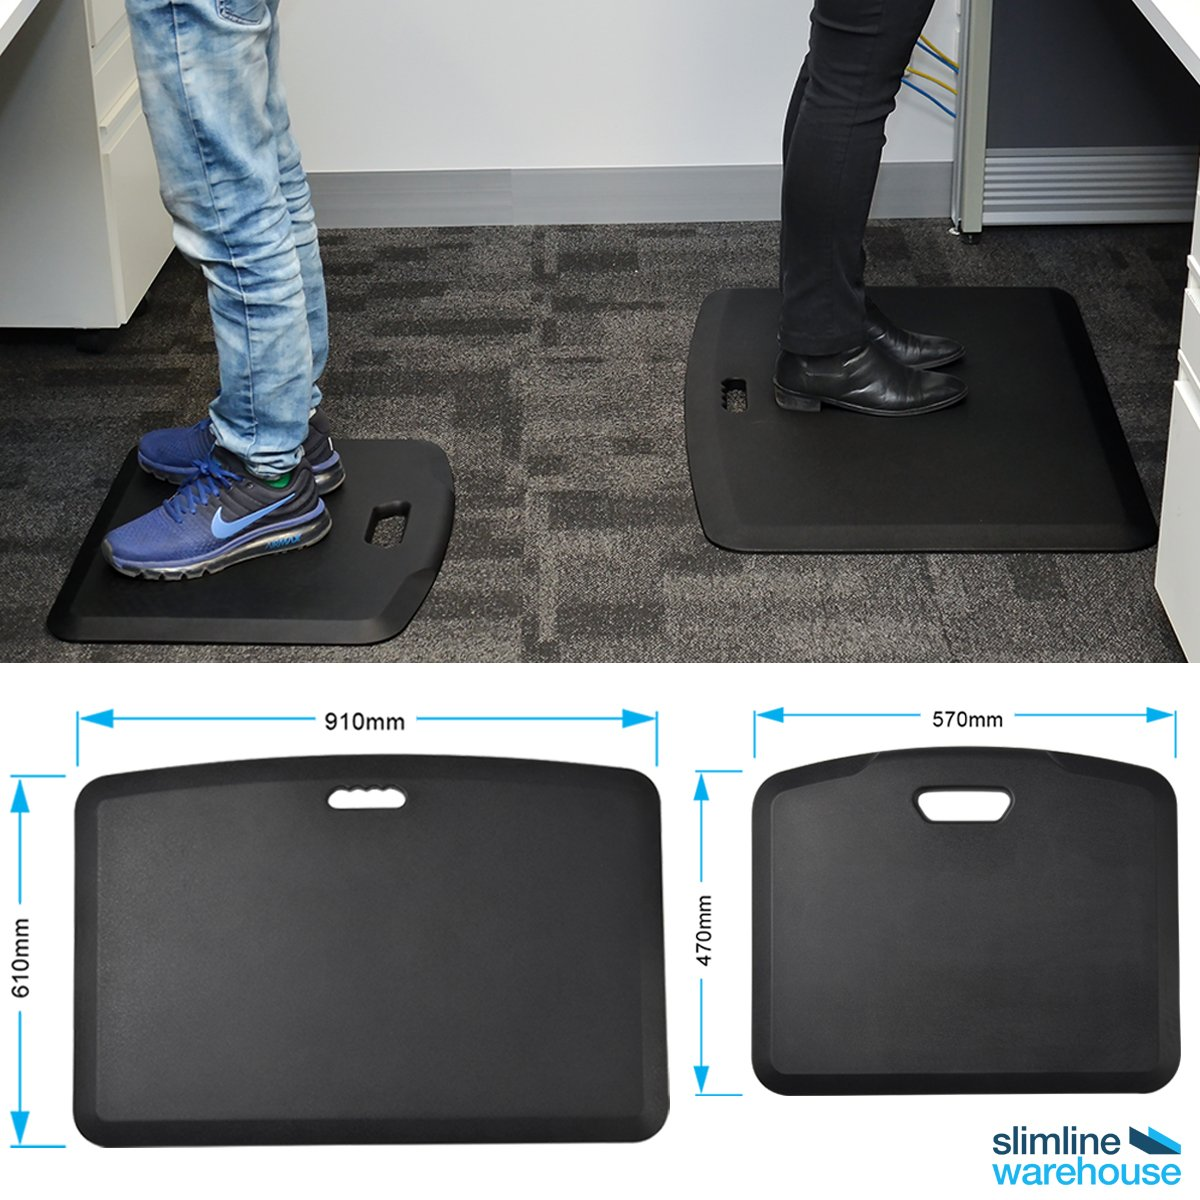 Standing during longs periods of time at work can cause aching feet, these office mats are a great way of offering cushioned support that reduces strain on the calves, feet, and knees. 👣  Shop via link: https://t.co/yrf6oNWb76 https://t.co/PSisp71Au6